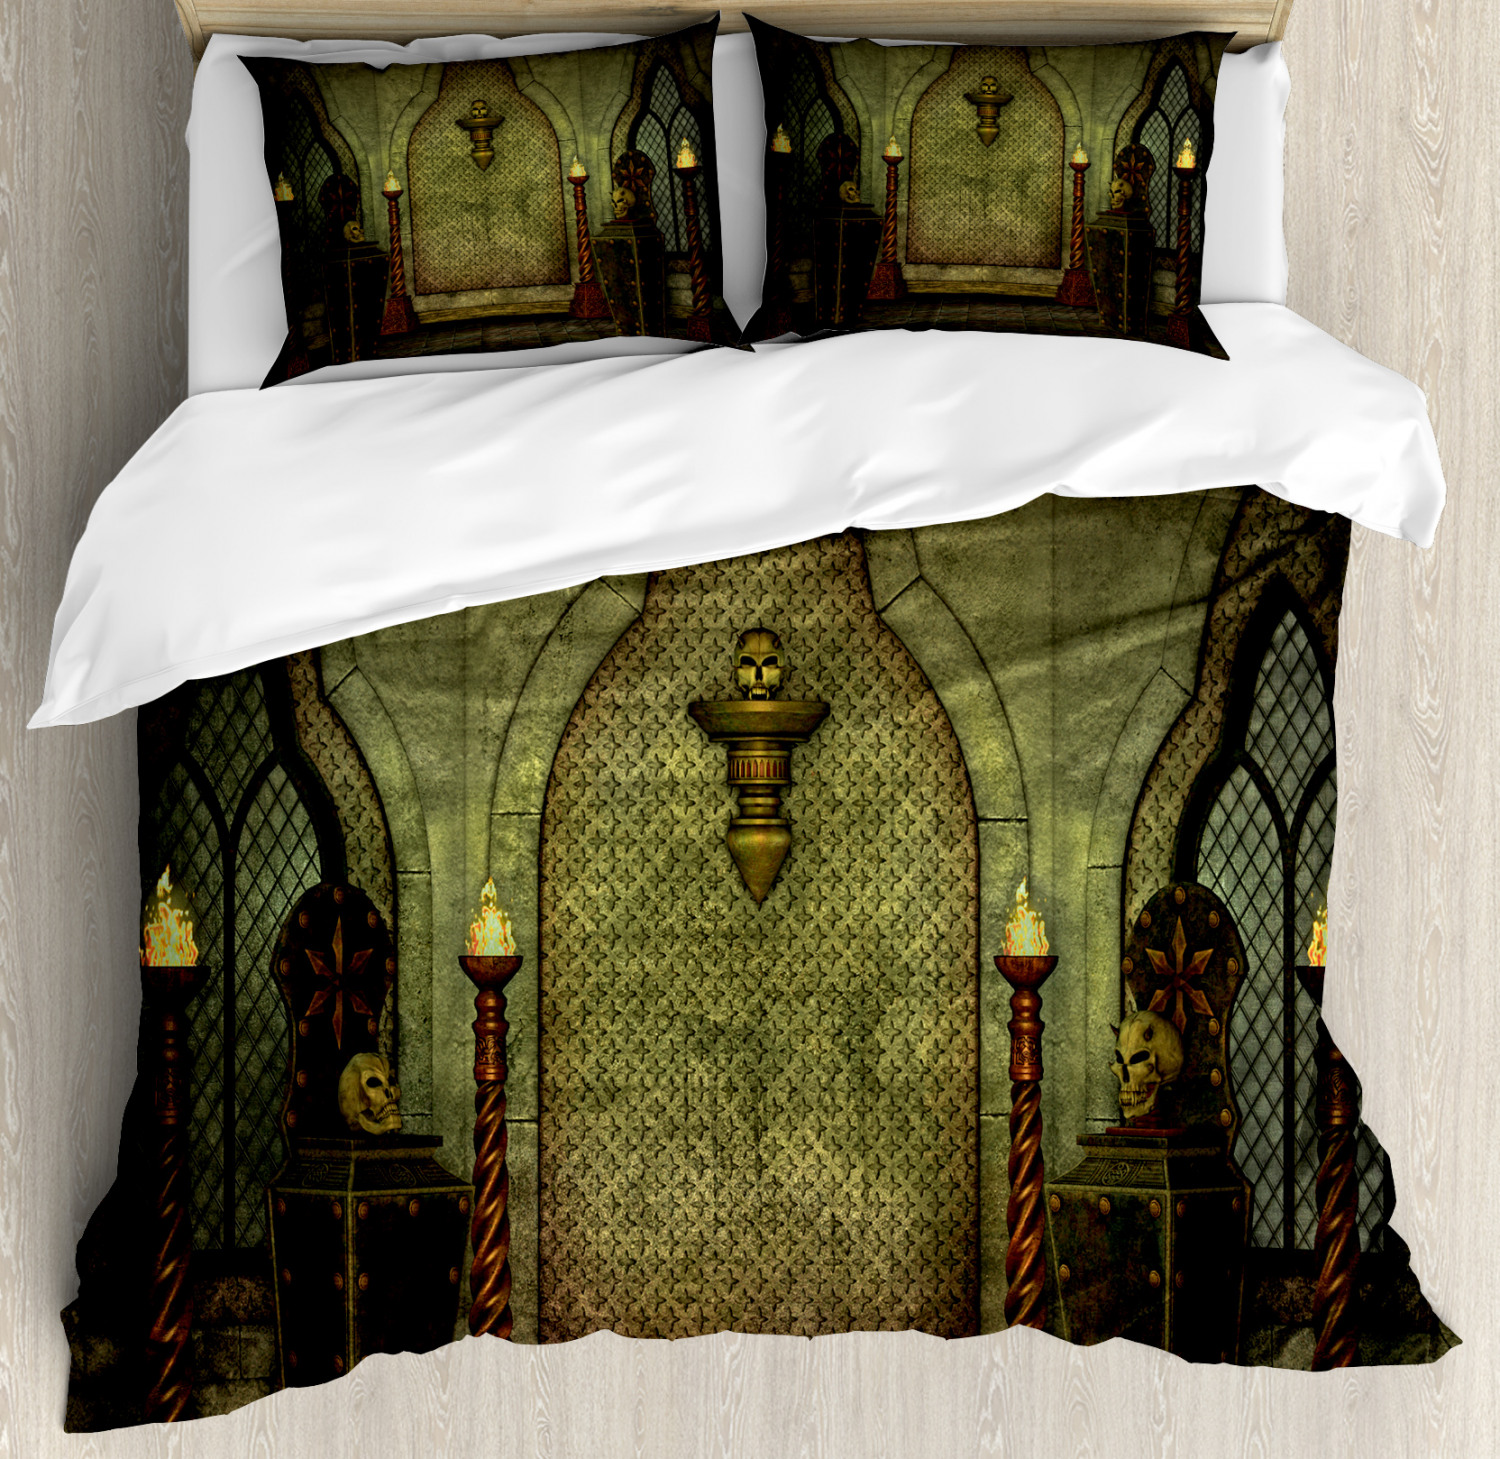 Gothic Duvet Cover Set Fantasy Scene With Old Fashioned Wooden Torch And Skull Candlesticks In Dark Spooky Room Decorative Bedding Set With Pillow Shams Brown By Ambesonne Walmart Com Walmart Com